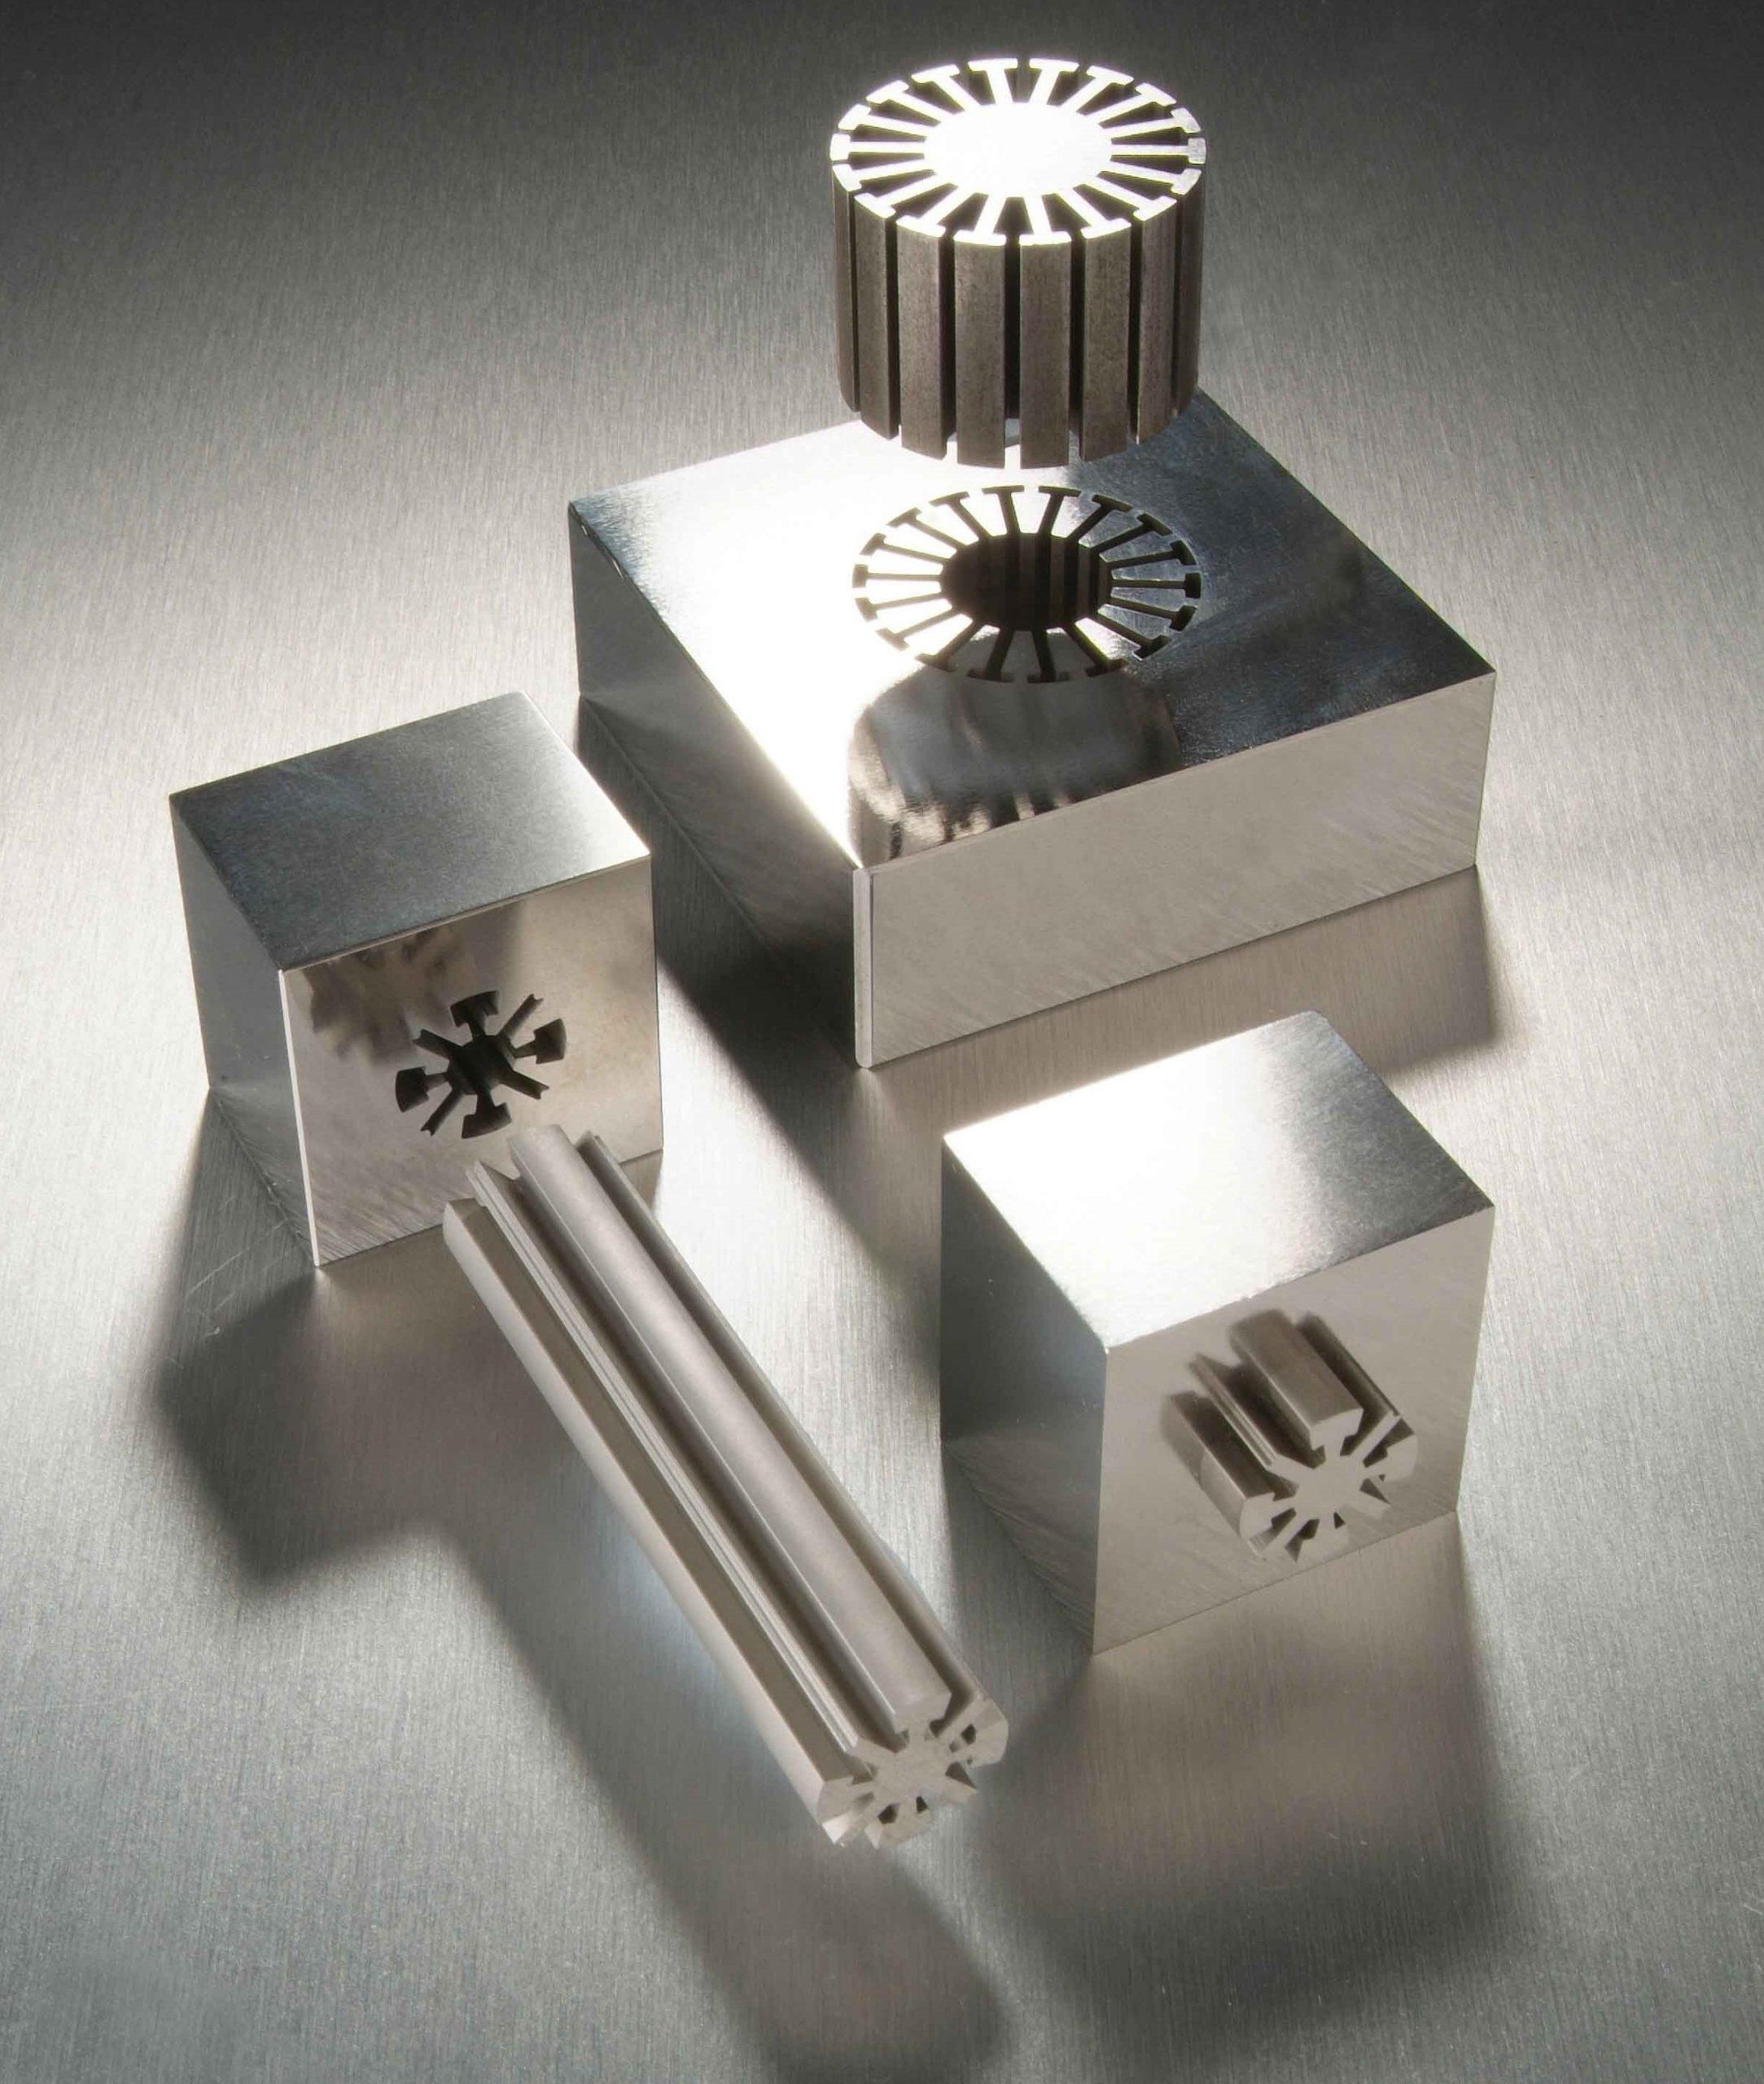 Wire erosion components for research, medical, automotive & EV sectors. Experts in Motor Laminations from prototype to volume production.